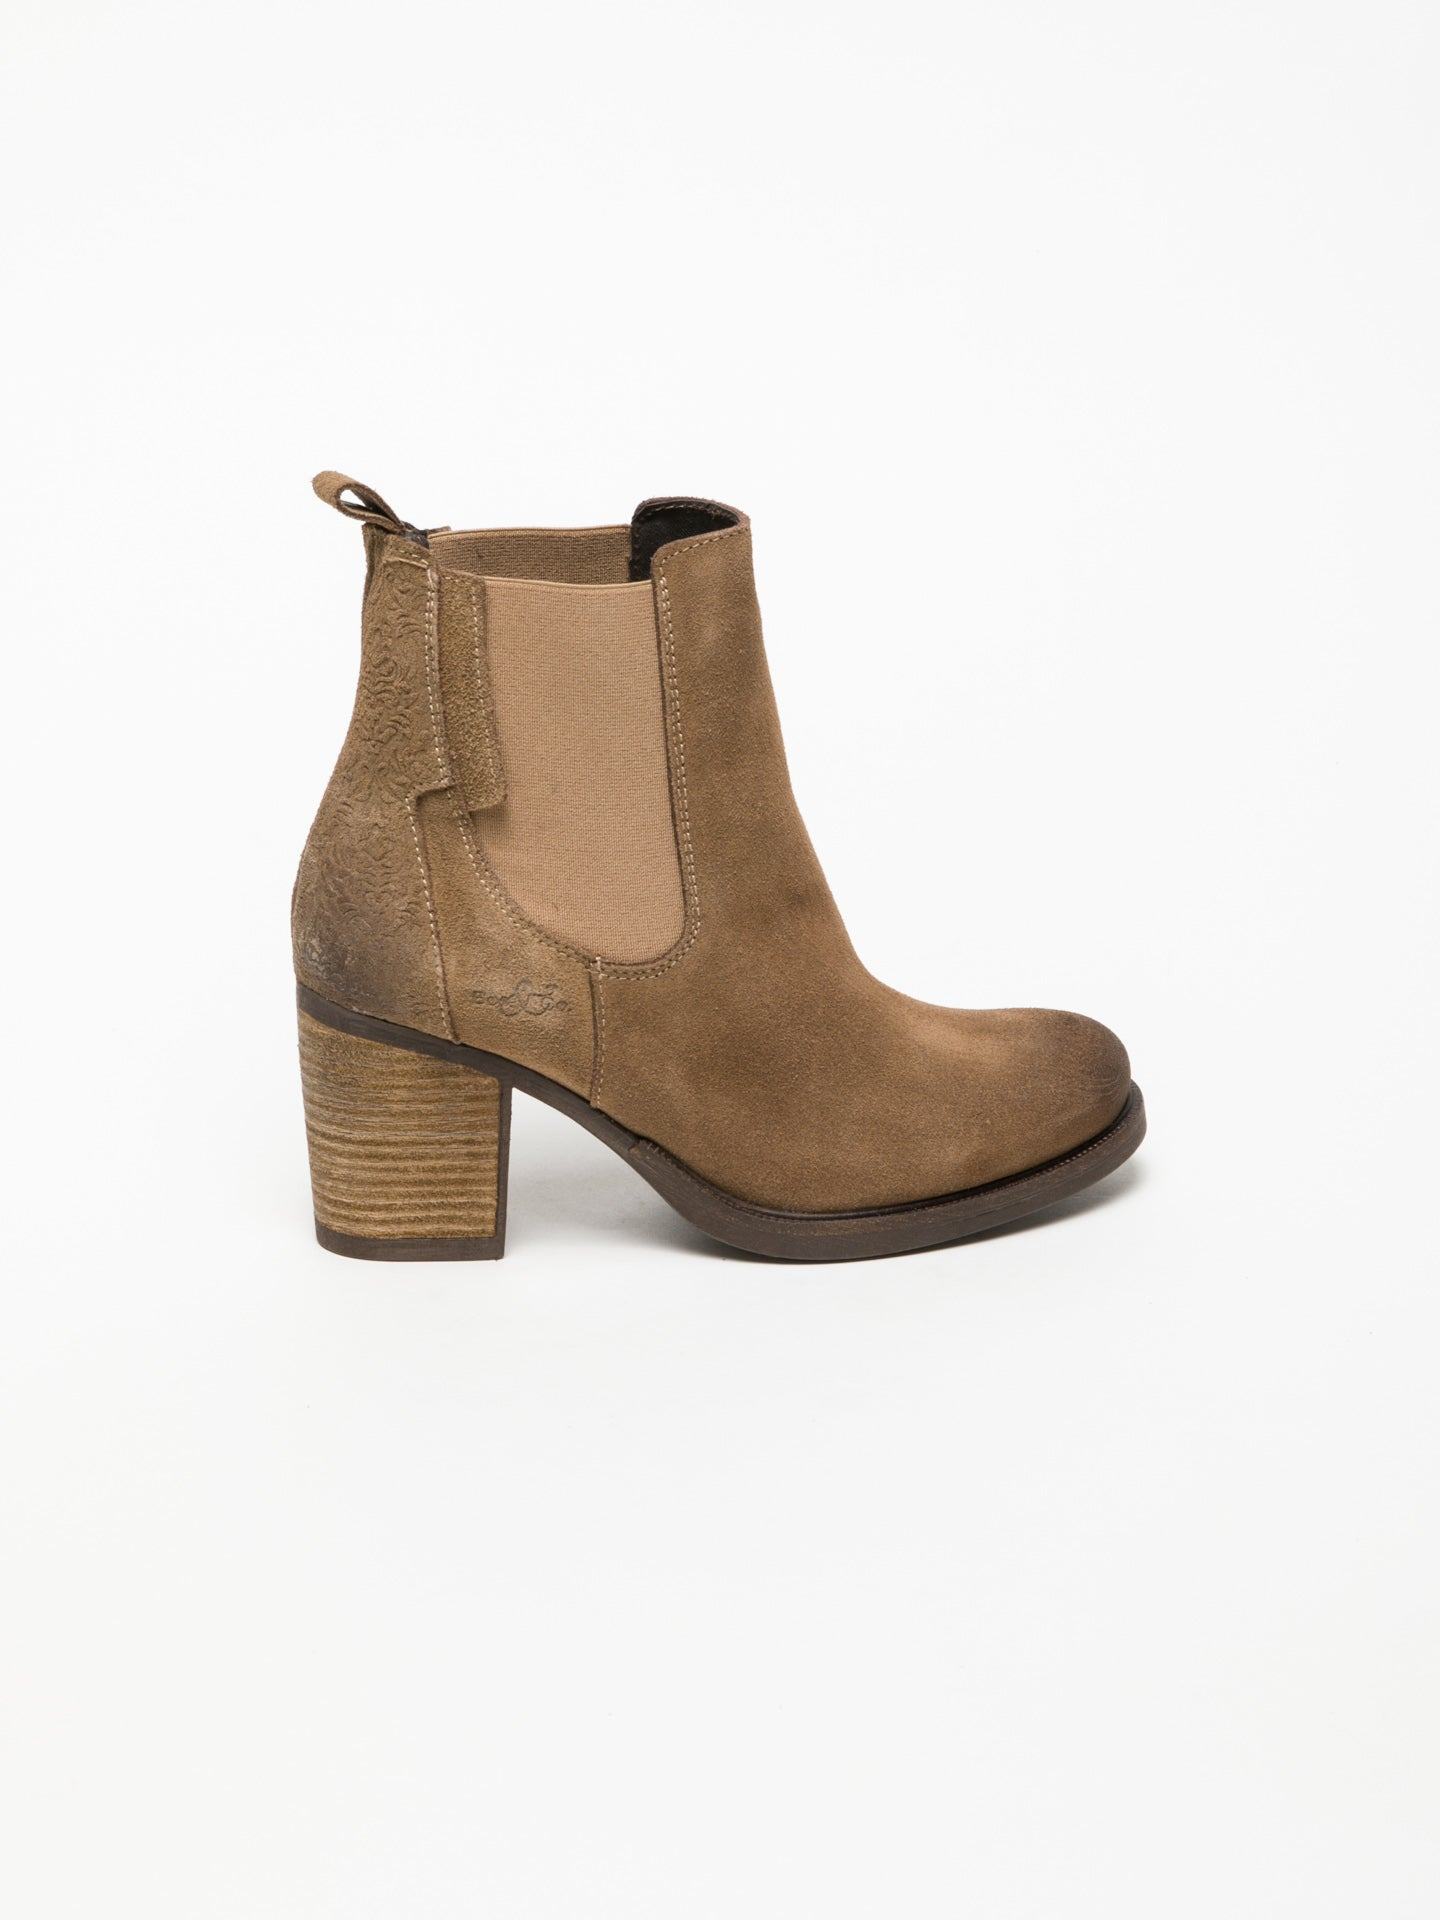 Bos&Co Tan Chelsea Ankle Boots